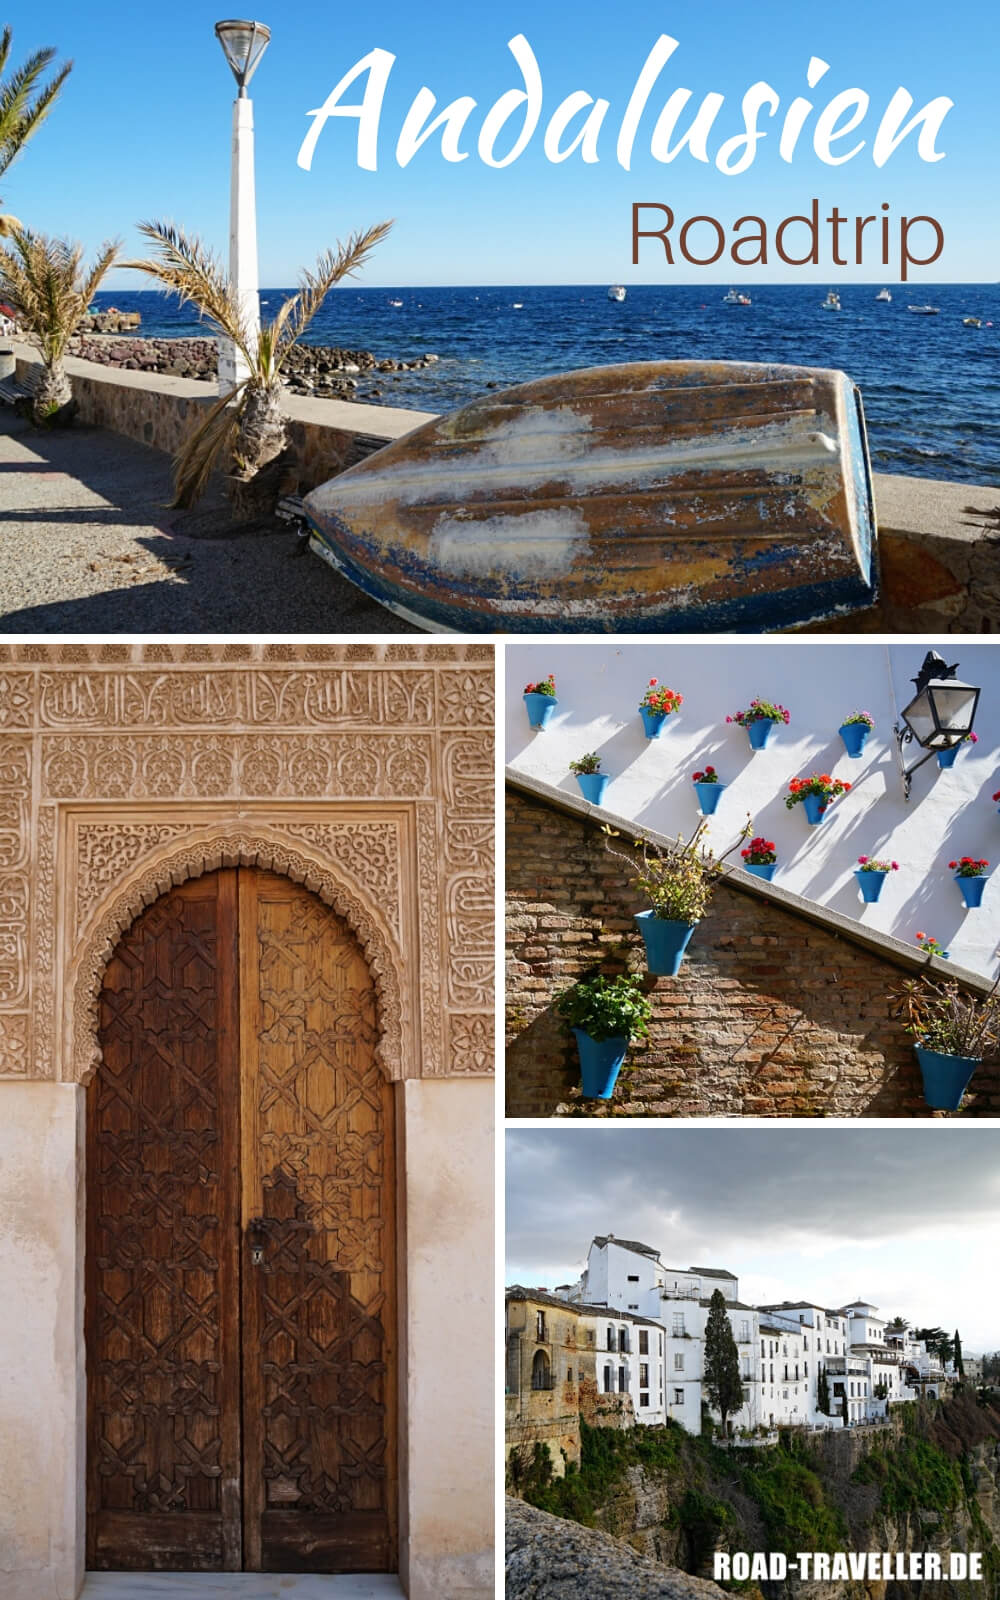 Andalusien Roadtrip: Unsere Route, Tipps und Highlights